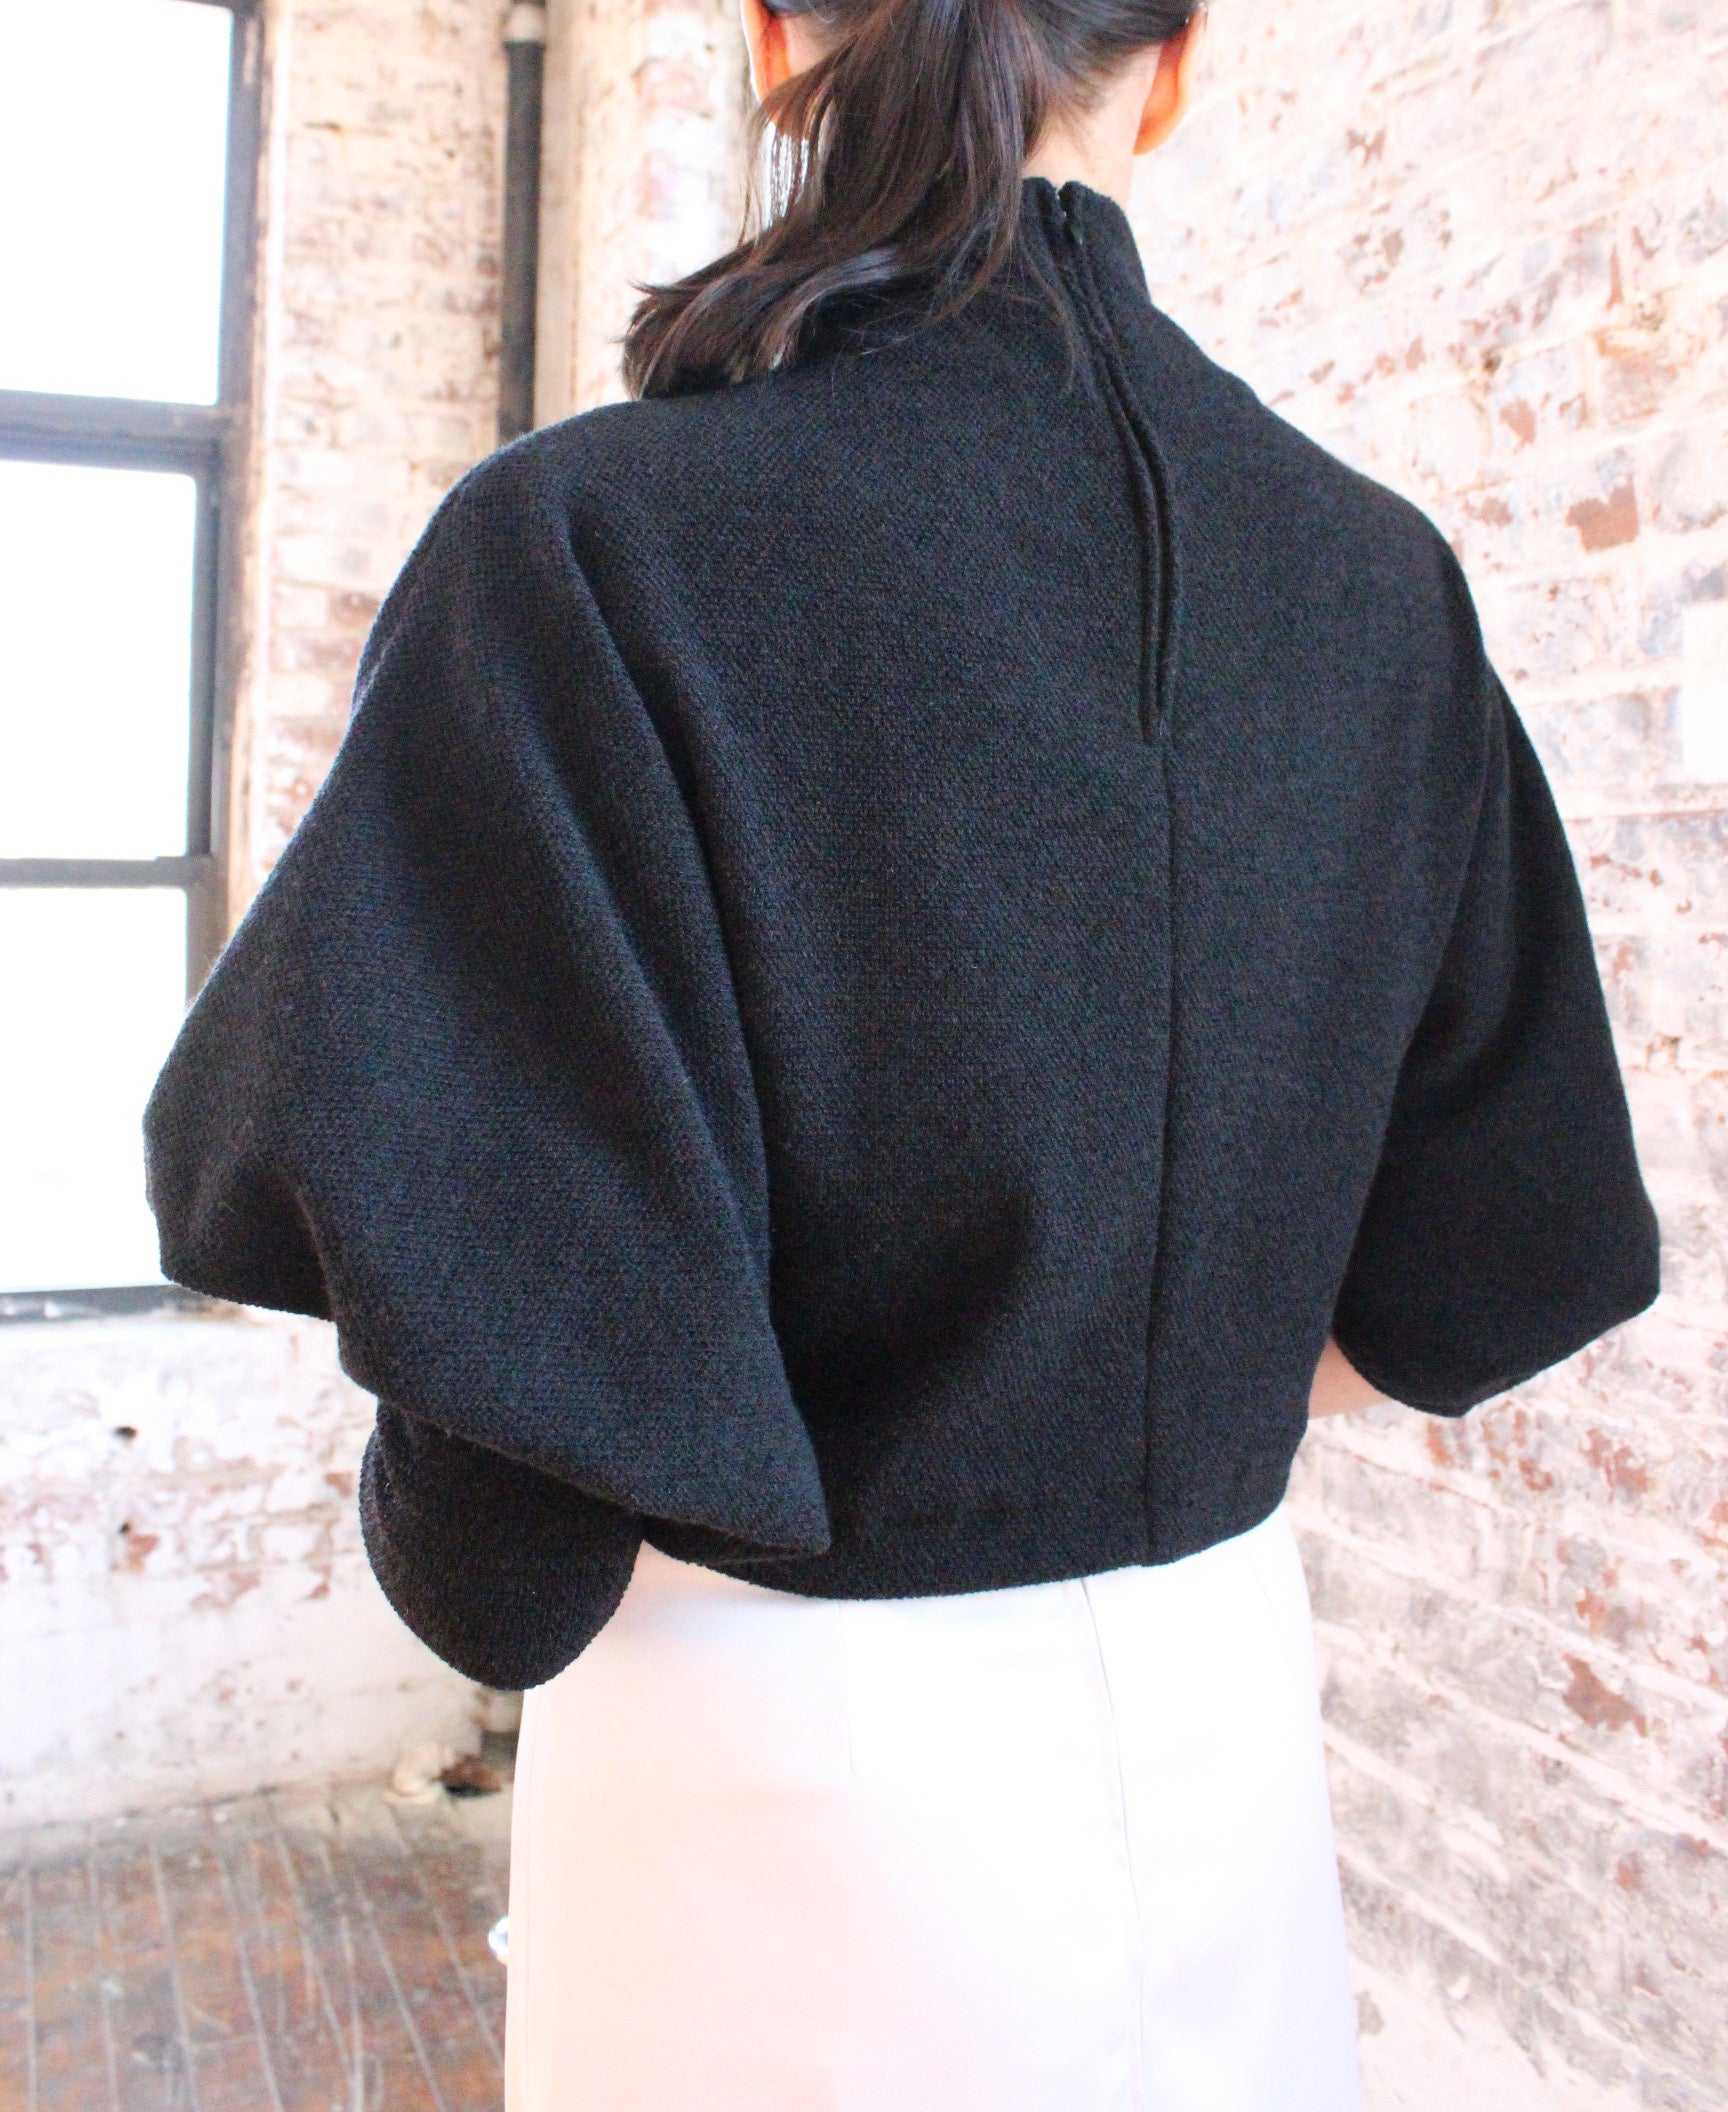 Ying Cai _ AW20 Look 9 Sweater 6